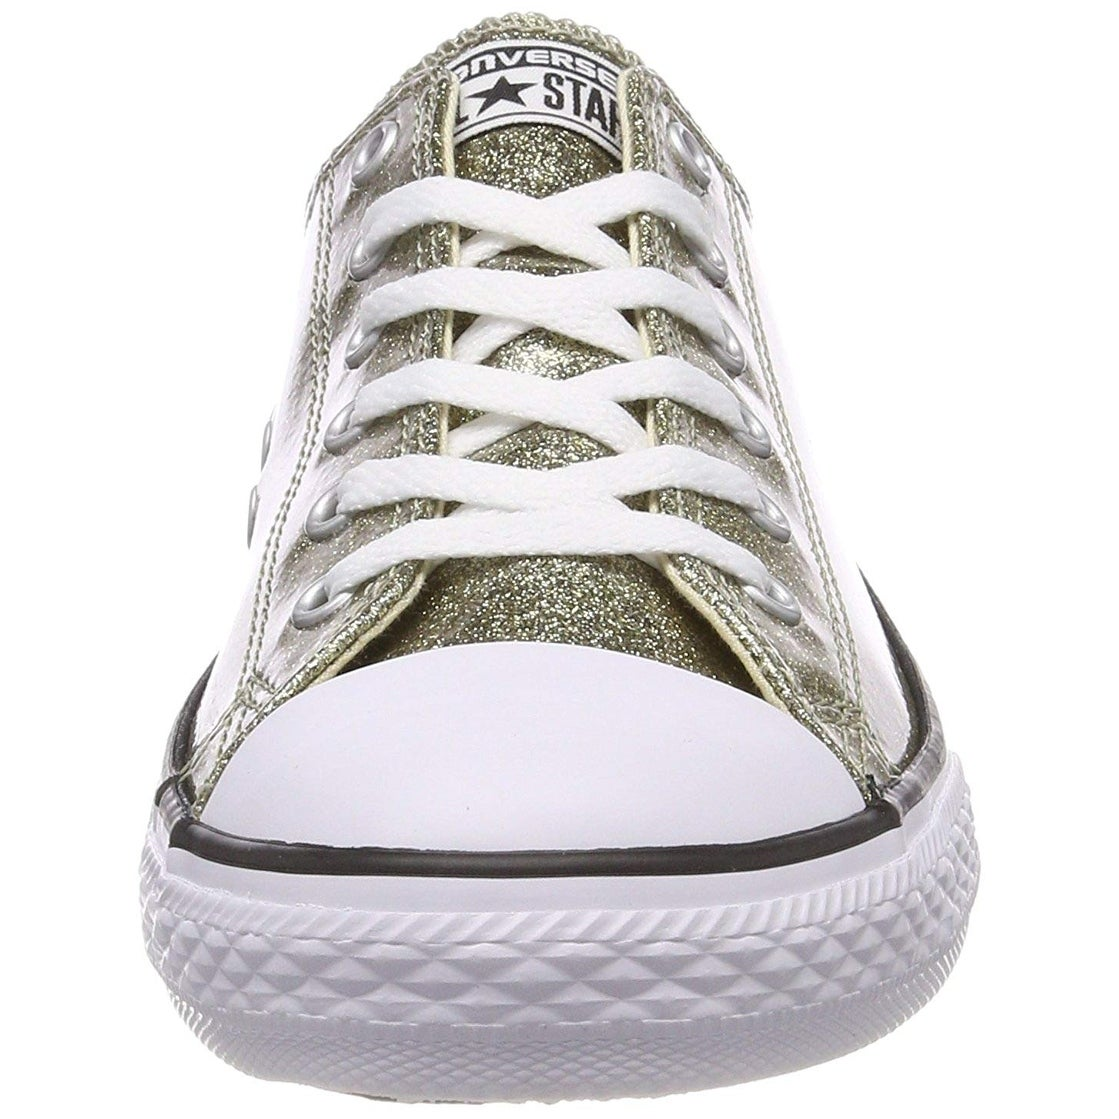 104a4f280fc7 Shop Converse Chuck Taylor All Star Glitter Ox Gold Synthetic Youth  Trainers - Free Shipping On Orders Over  45 - Overstock - 27674663